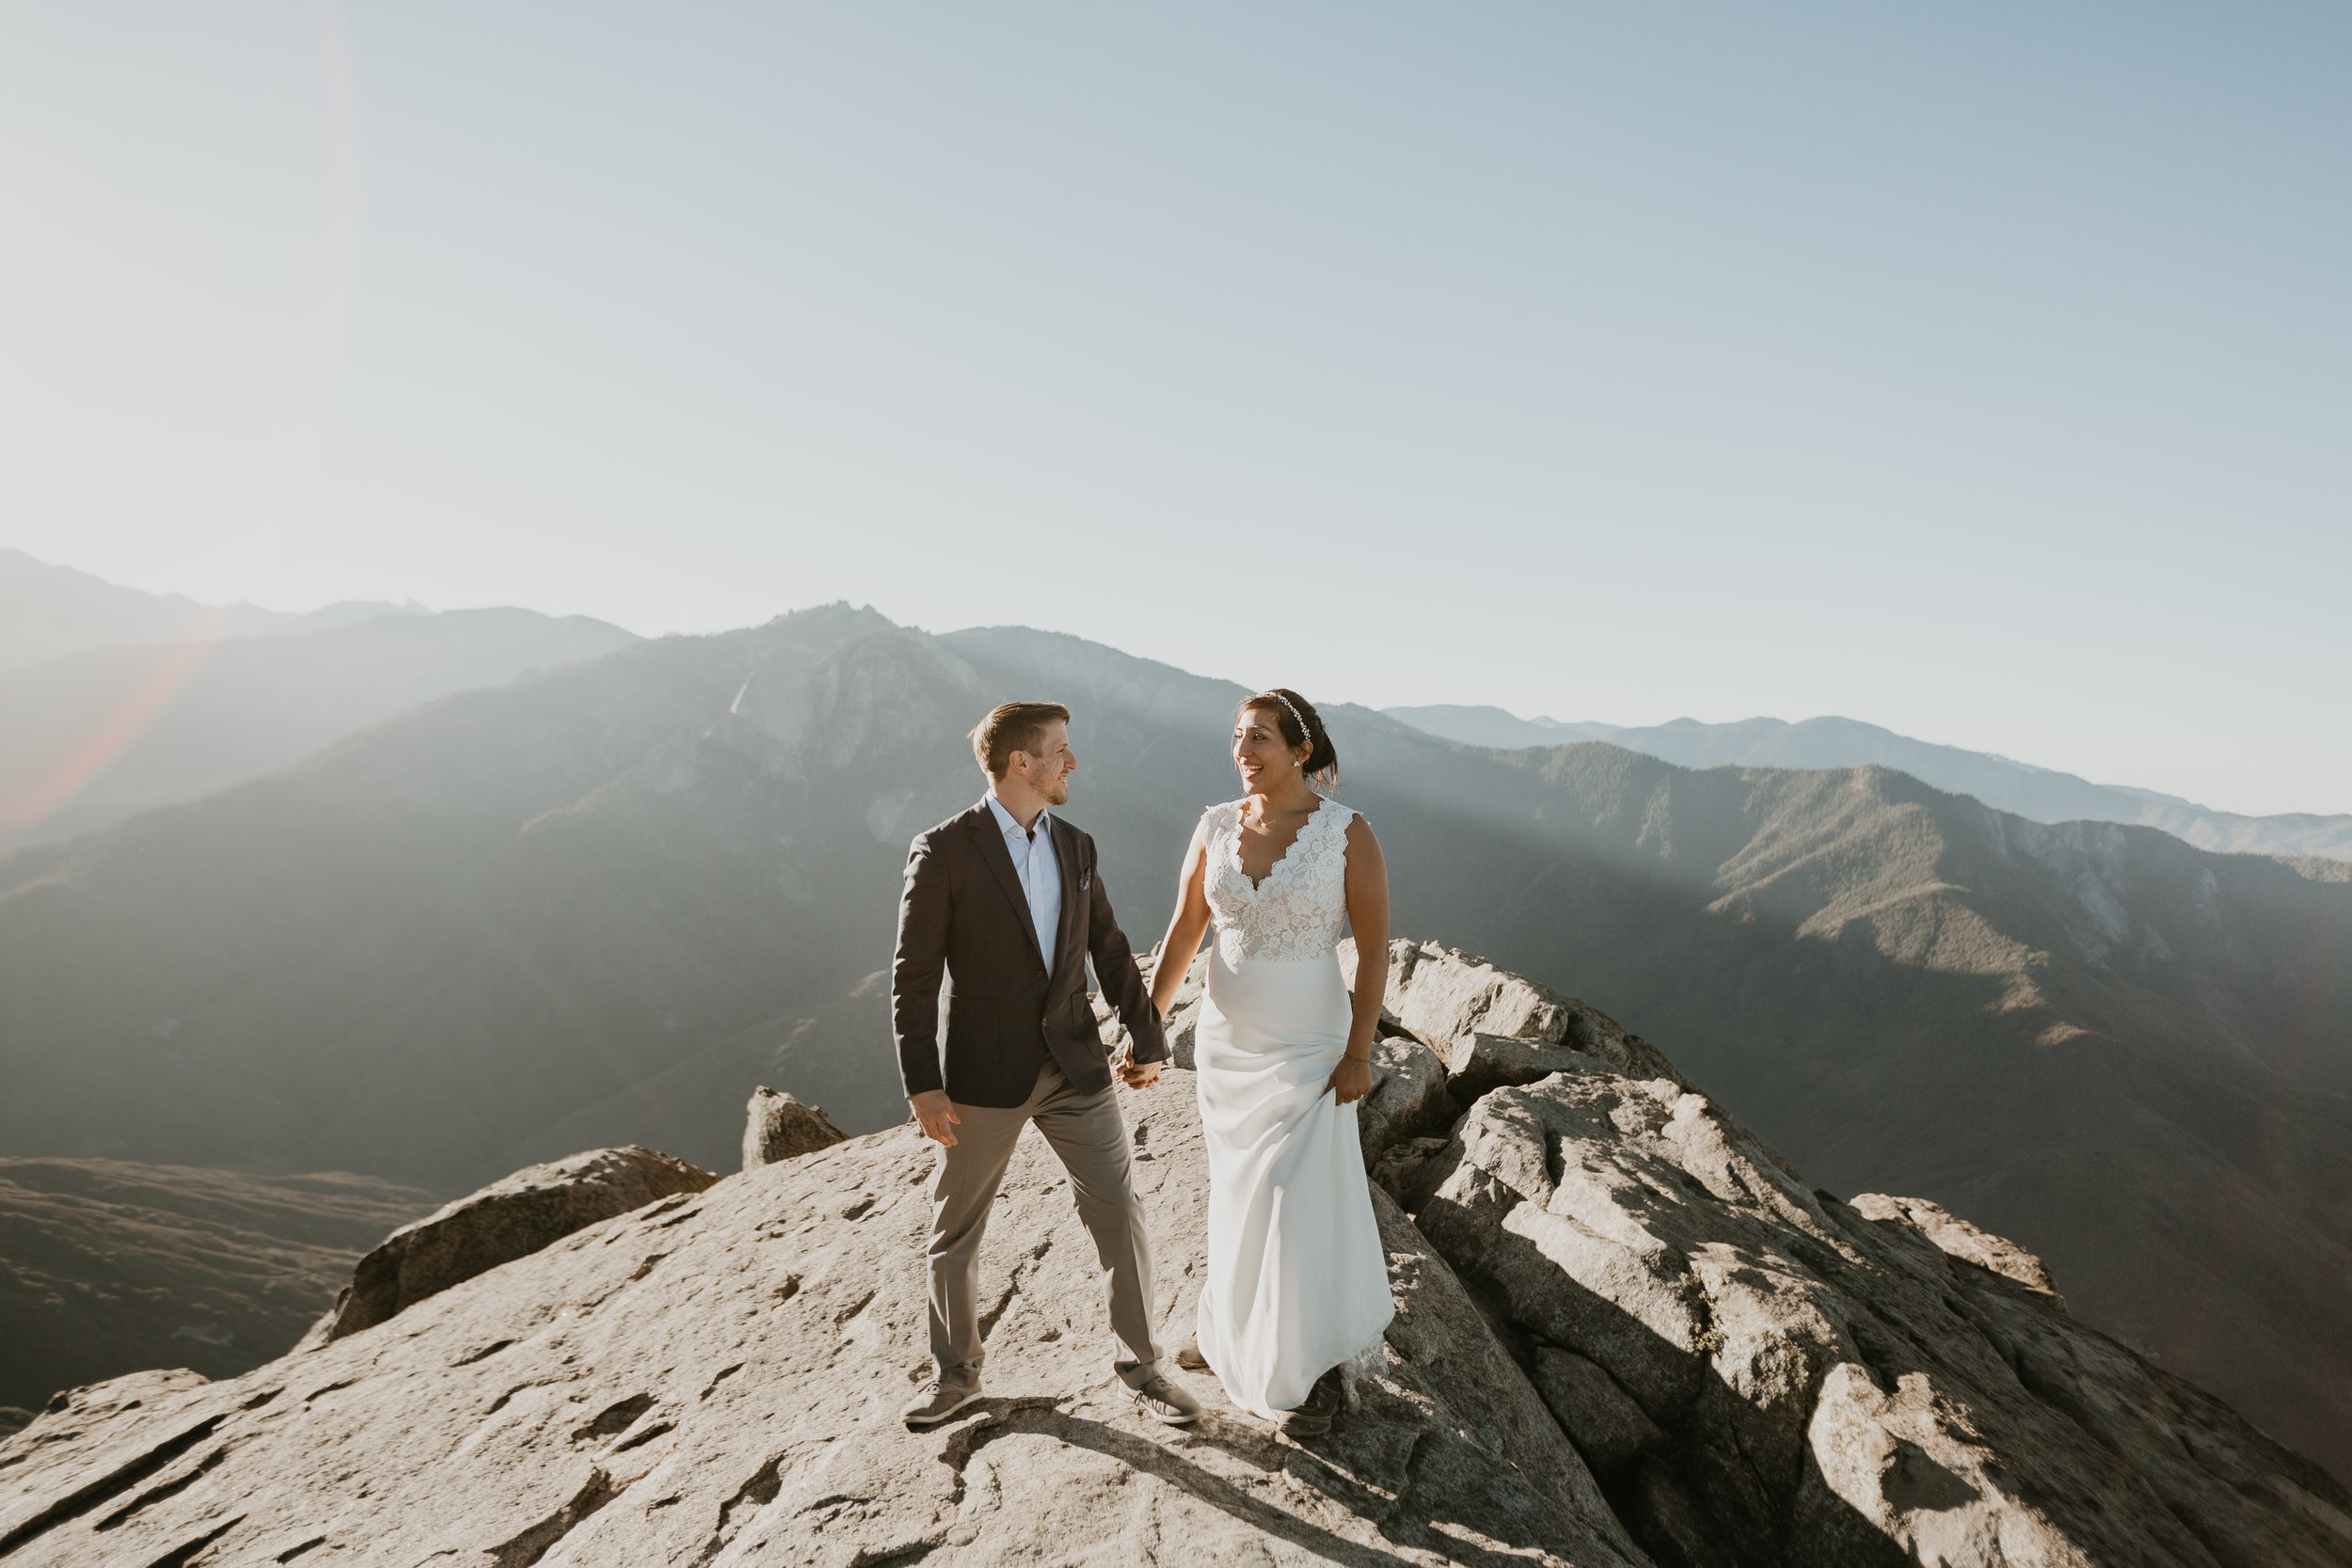 nicole-daacke-photography-sequoia-national-park-adventurous-elopement-sequoia-elopement-photographer-redwoods-california-intimate-wedding-photographer-6.jpg